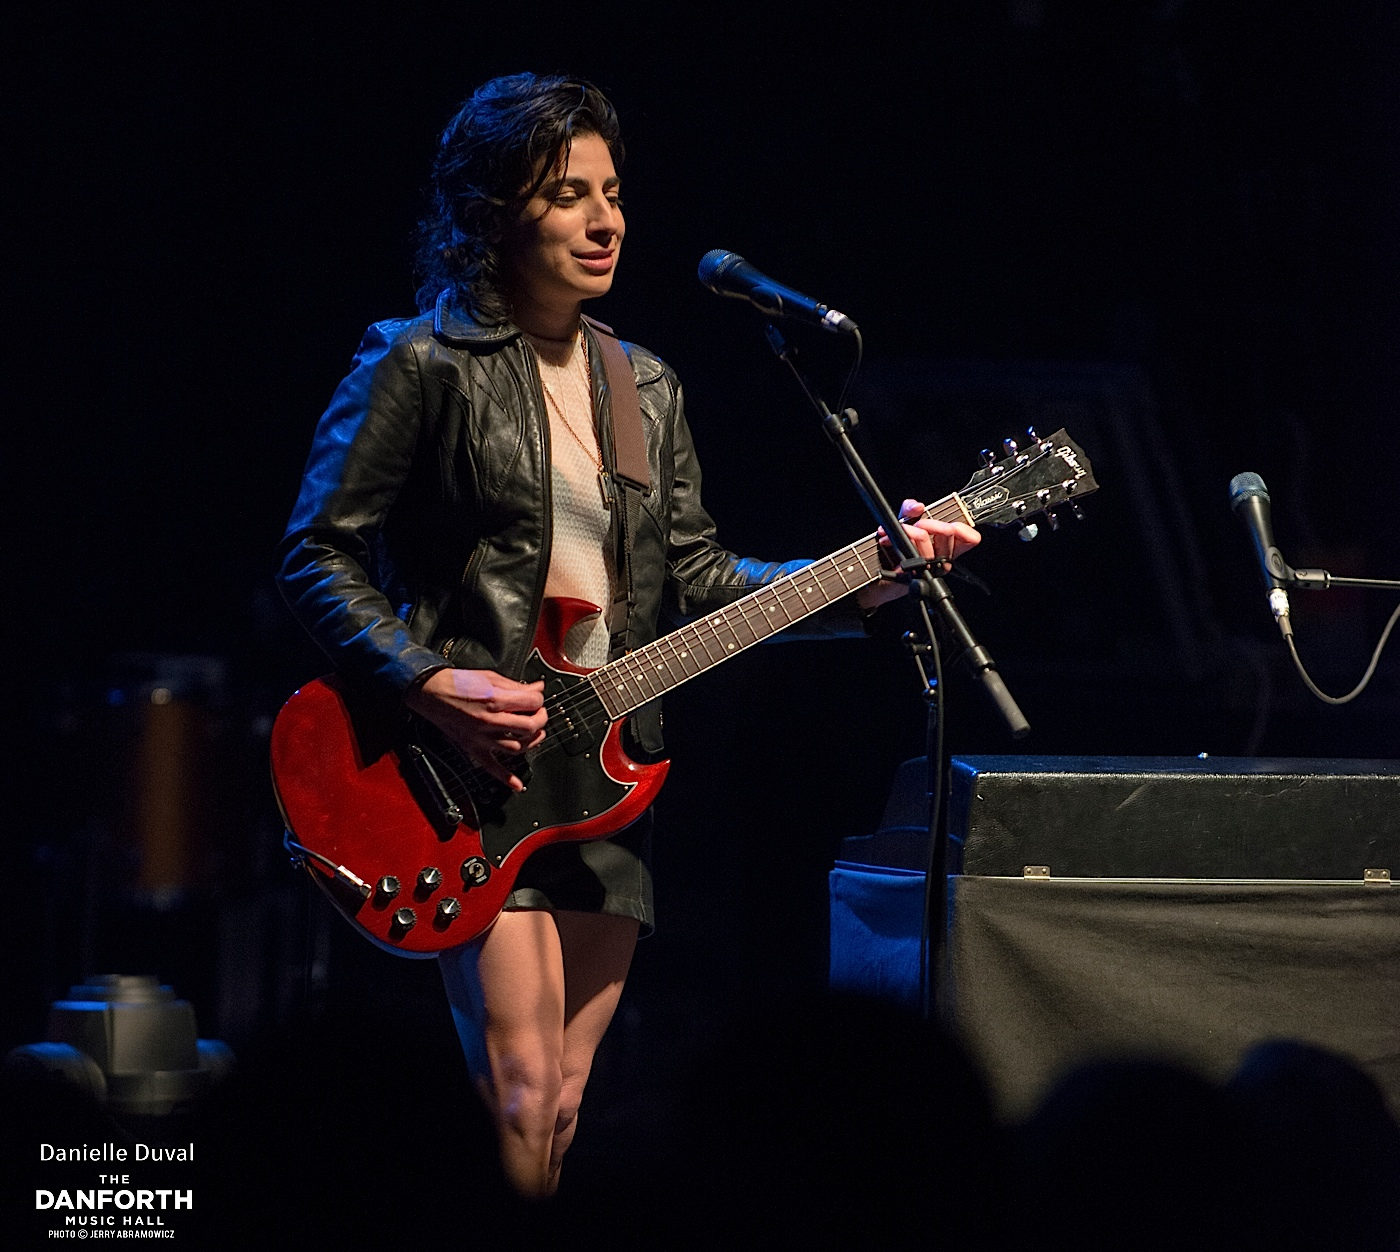 DANIELLE DUVAL opens for Serena Ryder at The Danforth Music Hall.